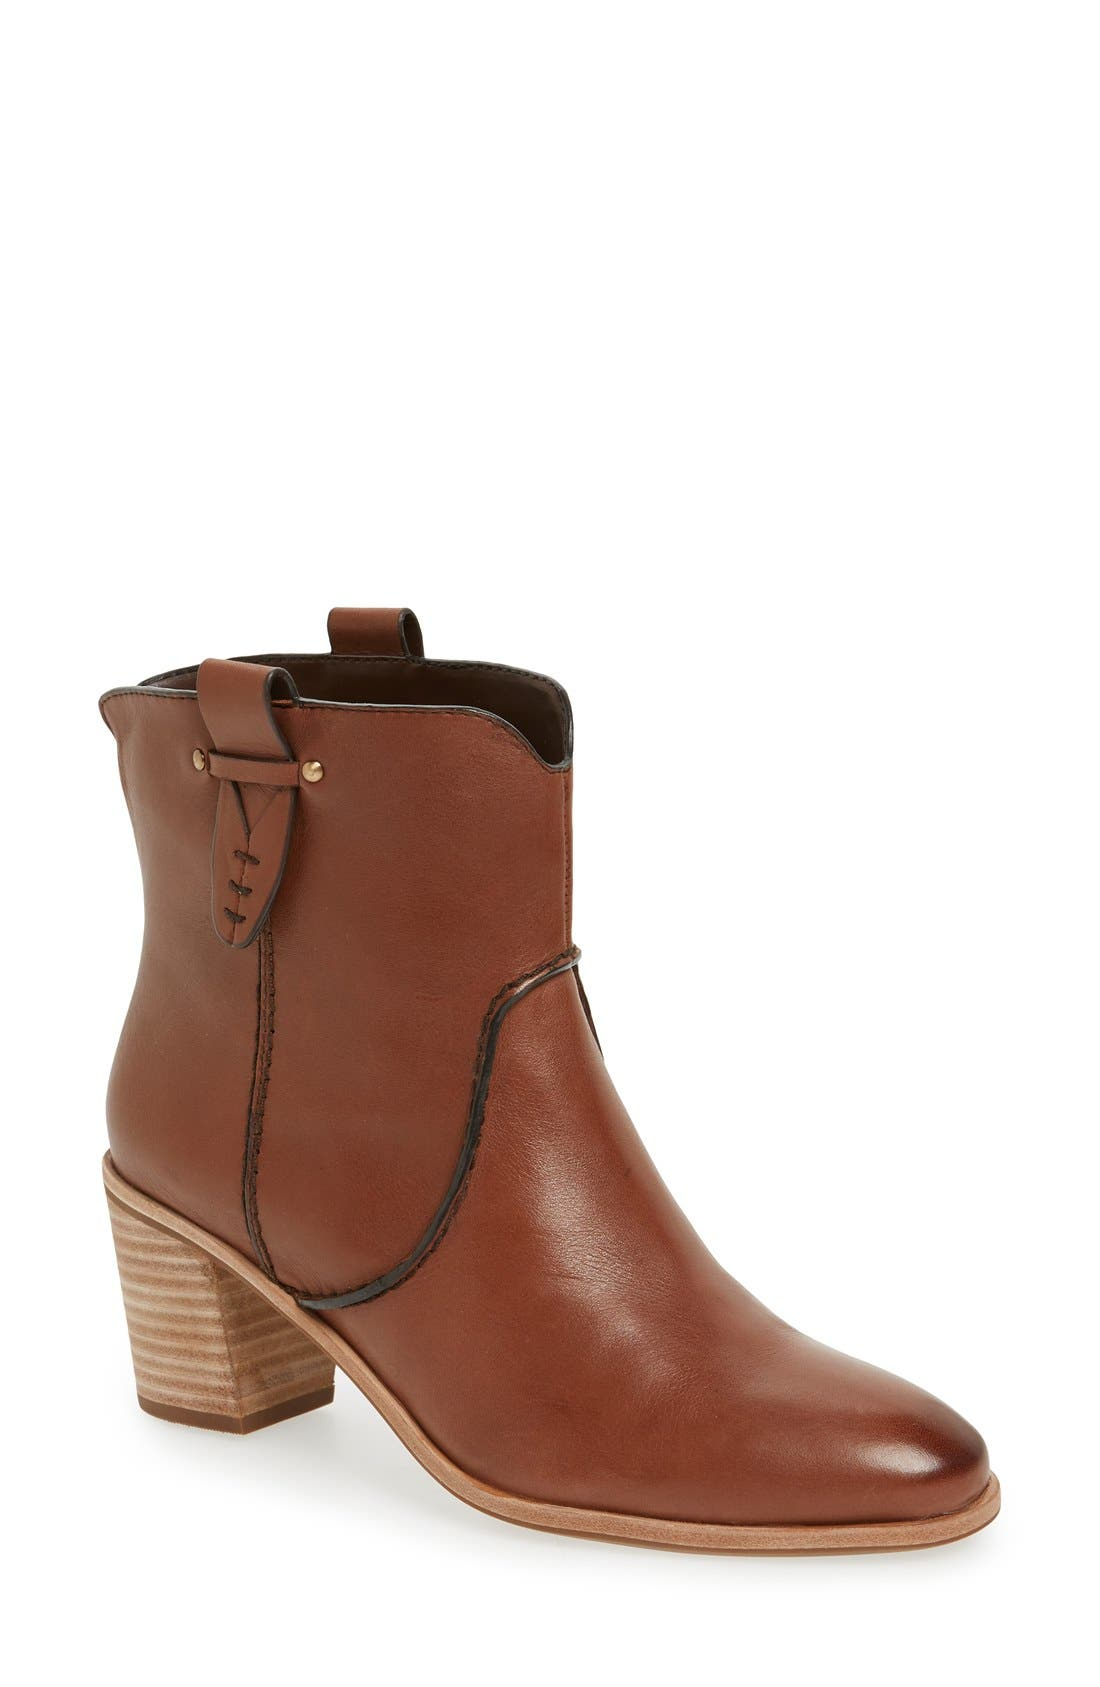 'Sophia' Pull-On Bootie,                             Main thumbnail 1, color,                             Whiskey Leather